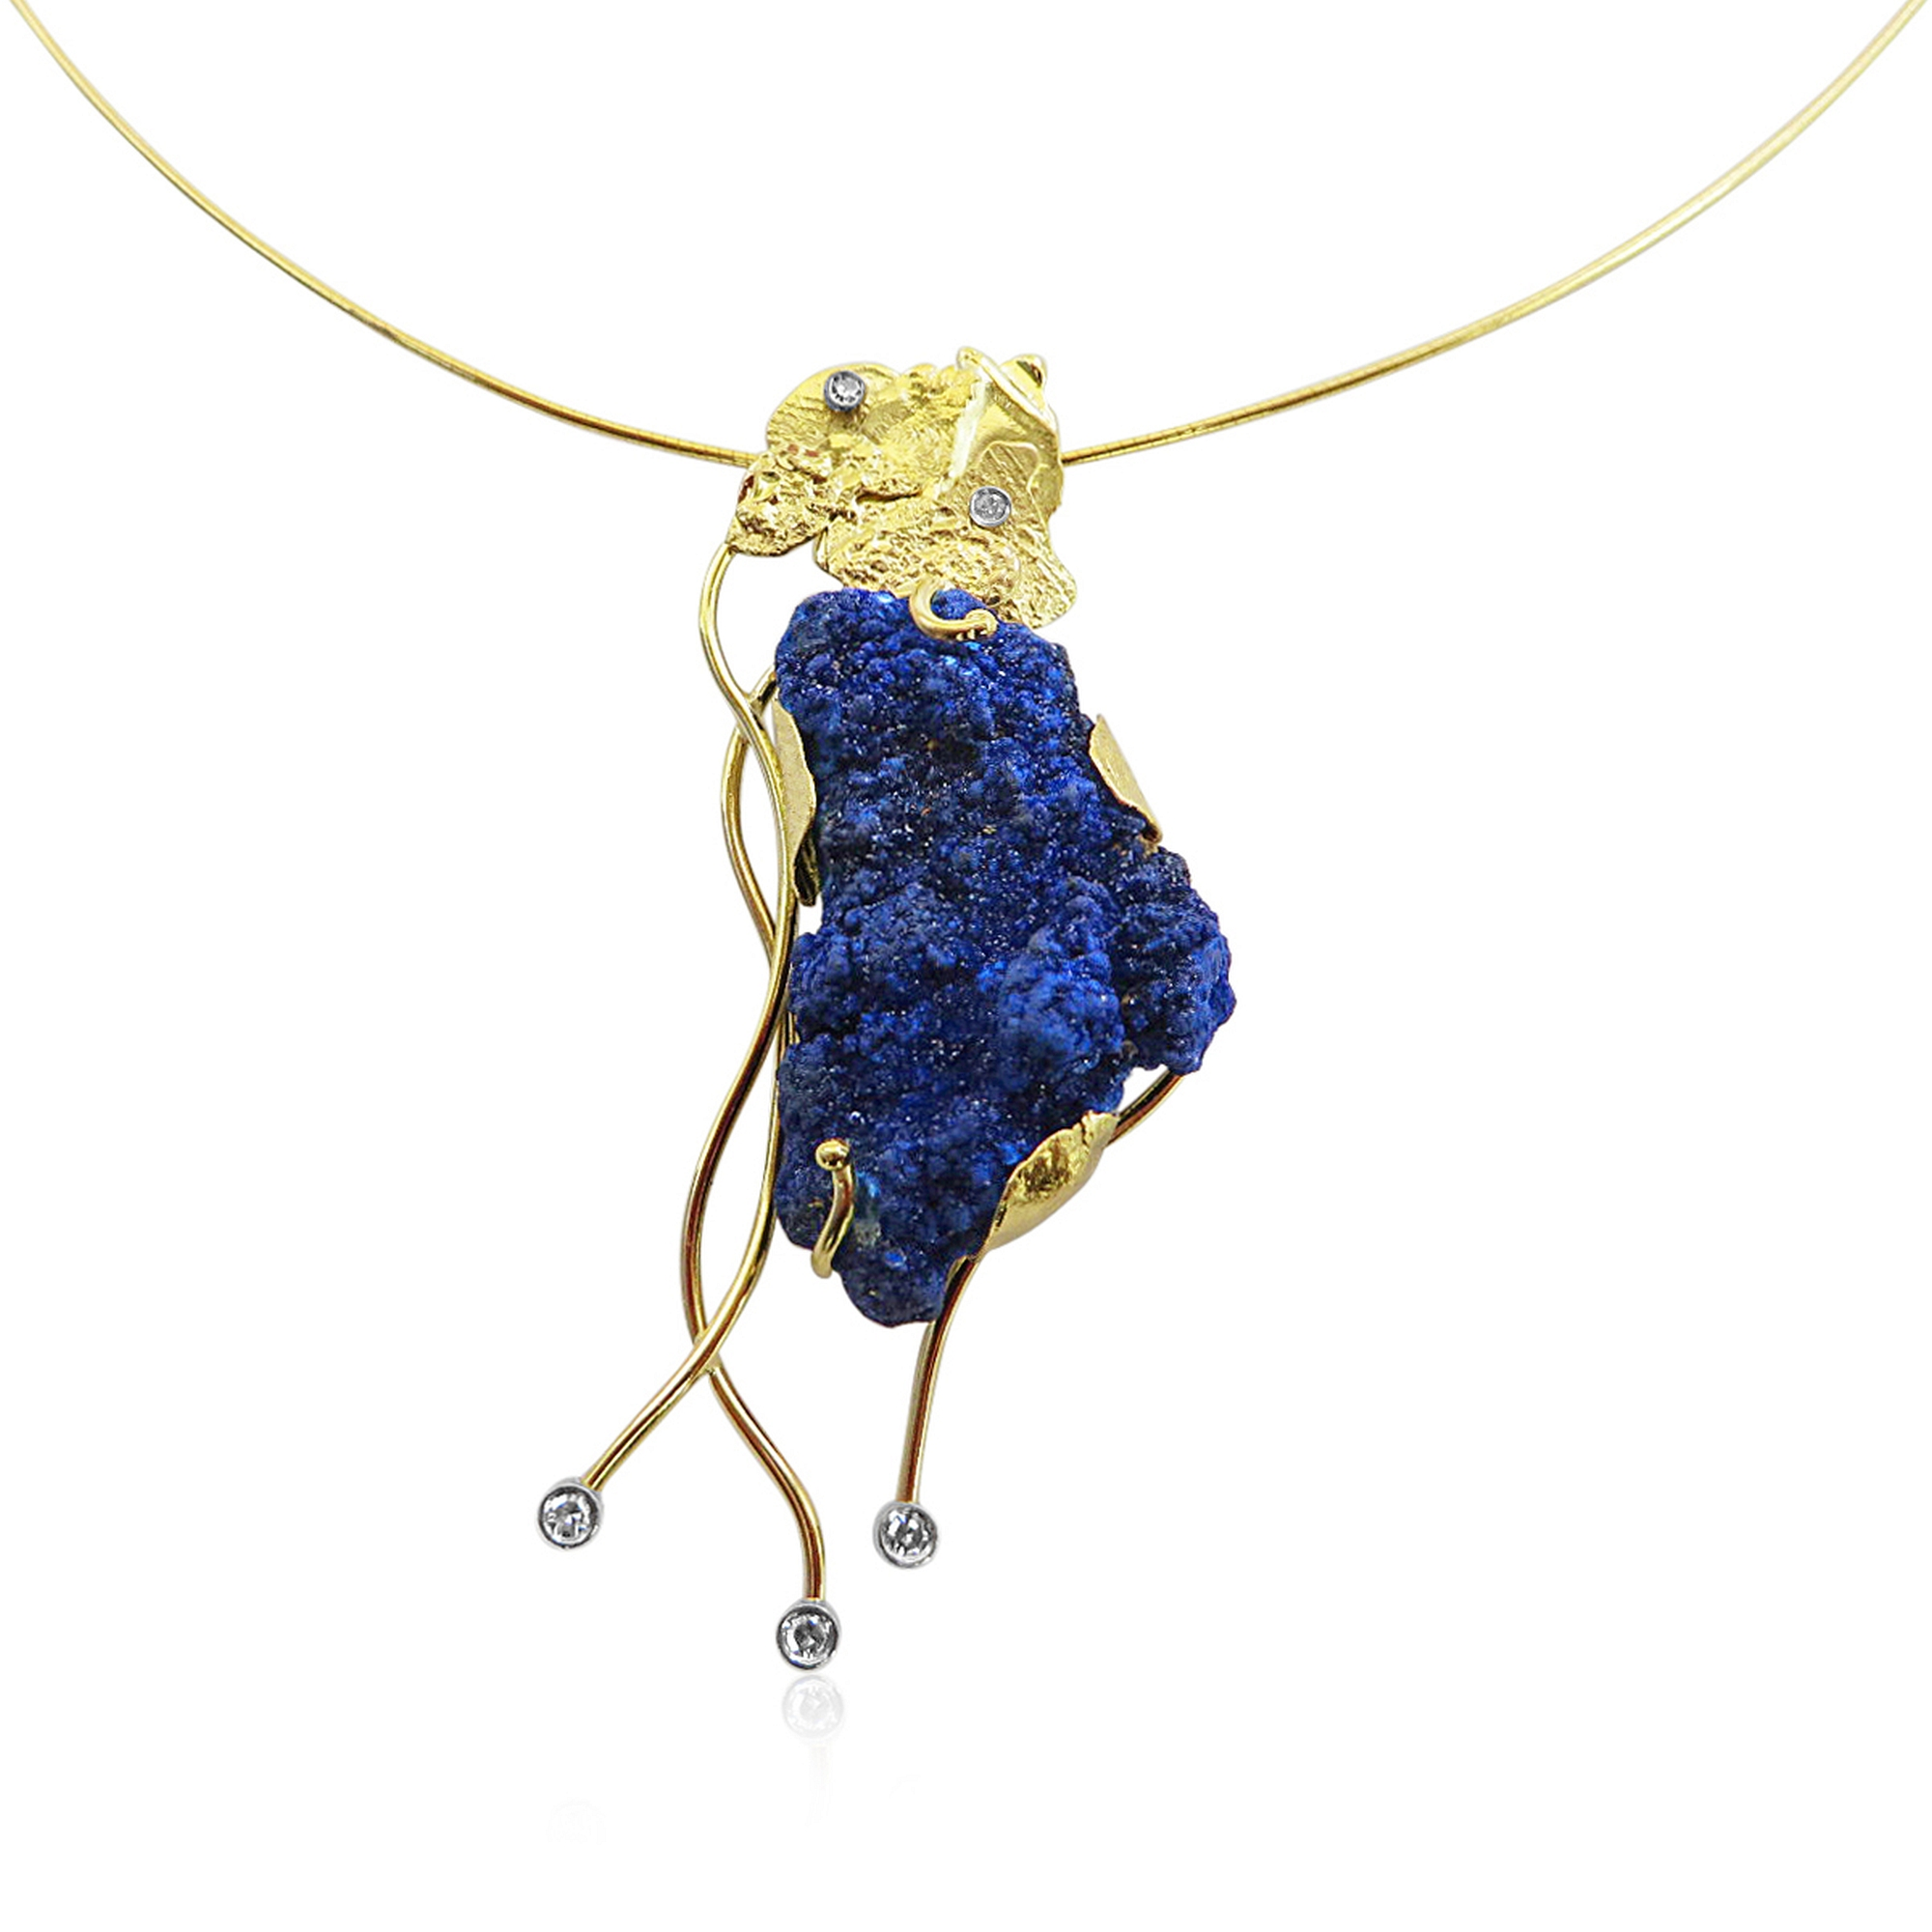 Unusual Azurite pendant with diamonds all hand made in 18ct Gold.